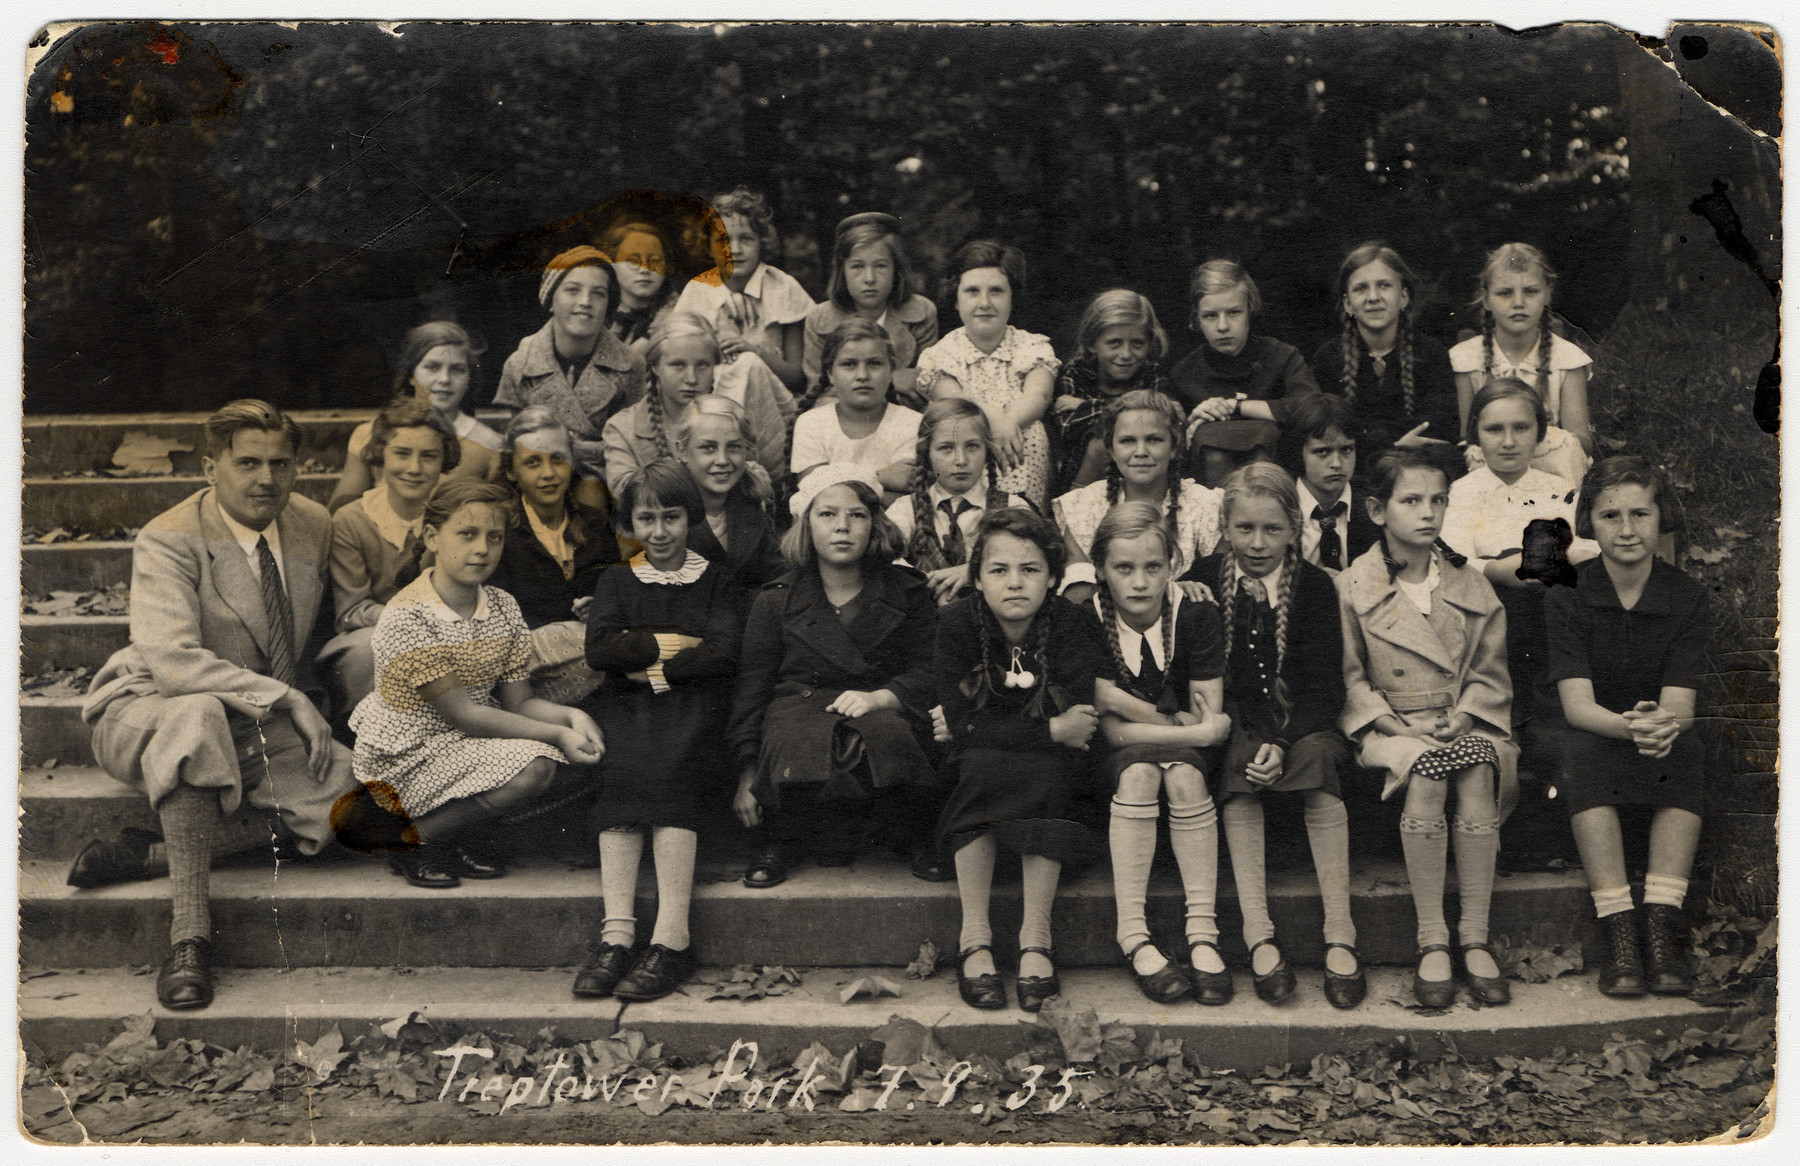 Students in the Agnes Miegel School (now called the Albert Schweitzer Gymnasium) in Berlin.  Helga Bujakowski, the only Jewish girl in the class, is pictured in the second row, center with a white shirt and tie and long braids.